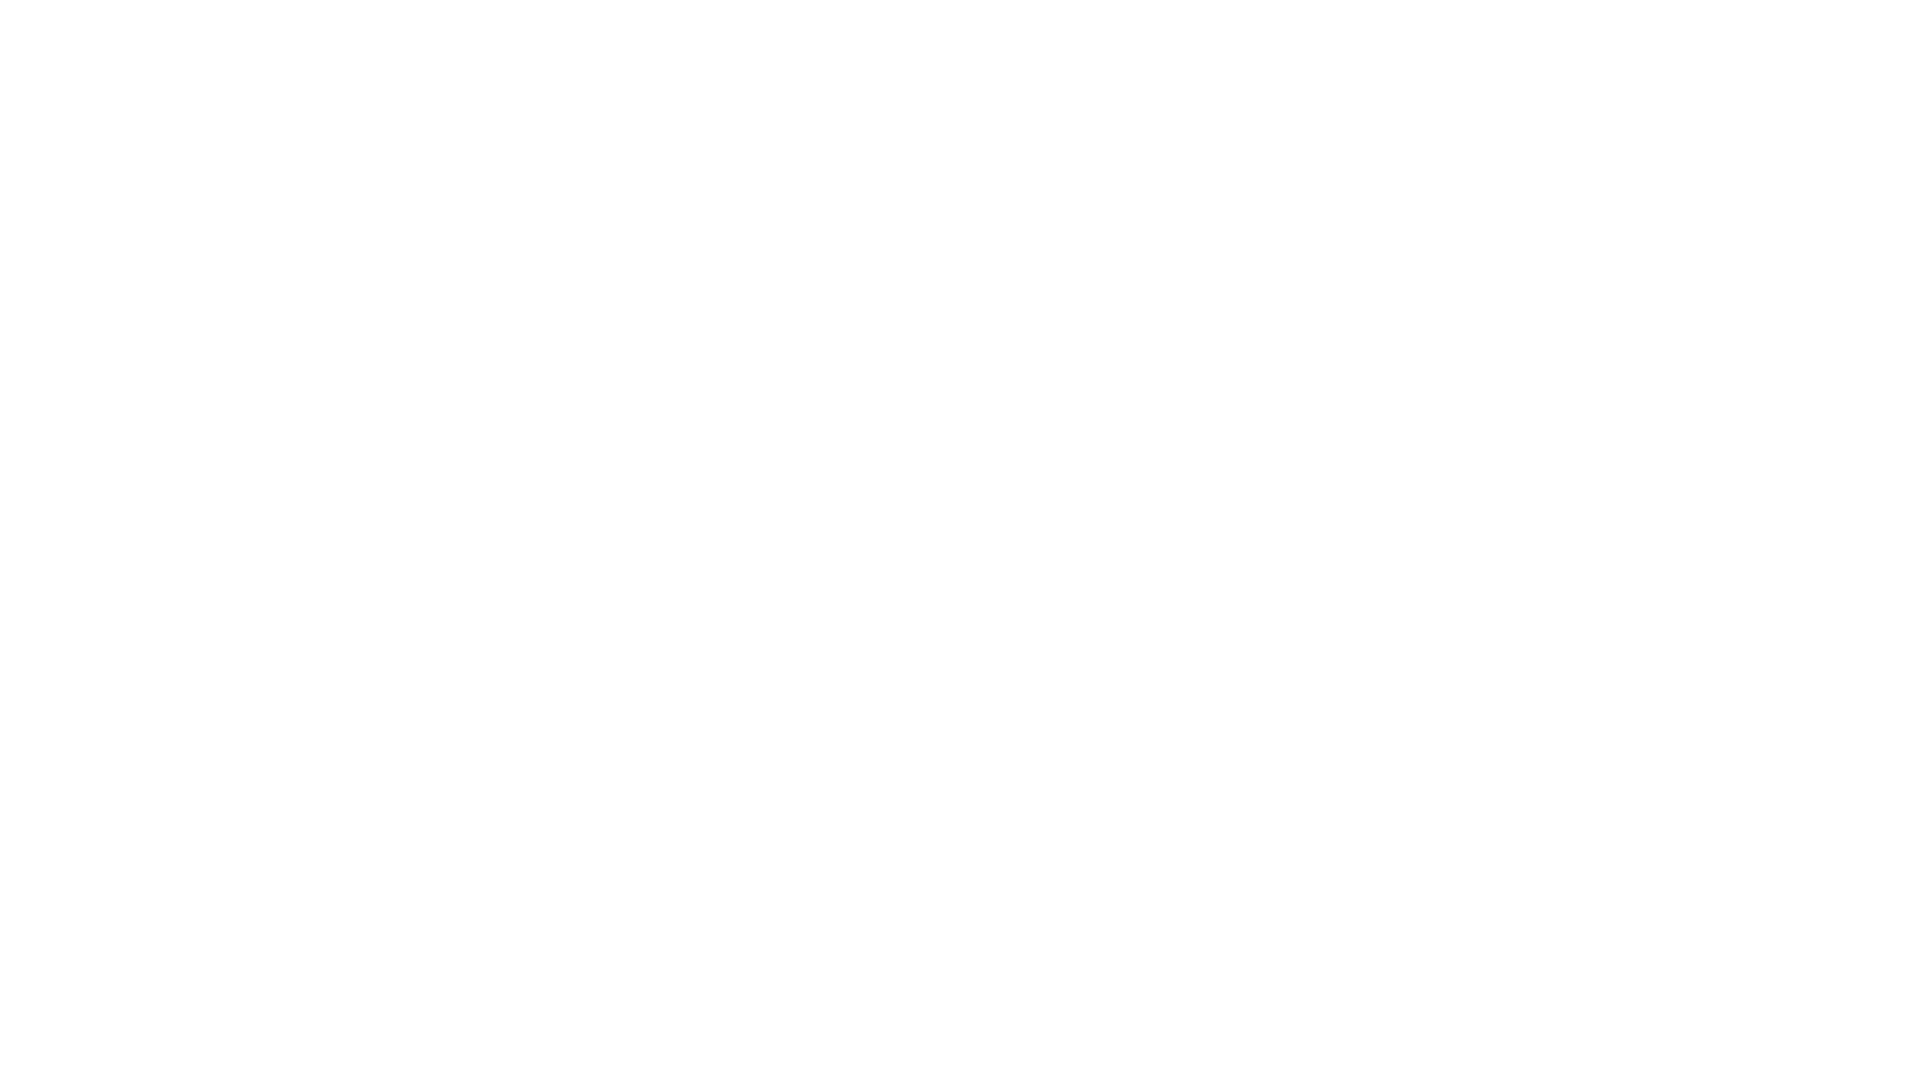 The FIRE Summit 2020 - Real Estate Investing Conference